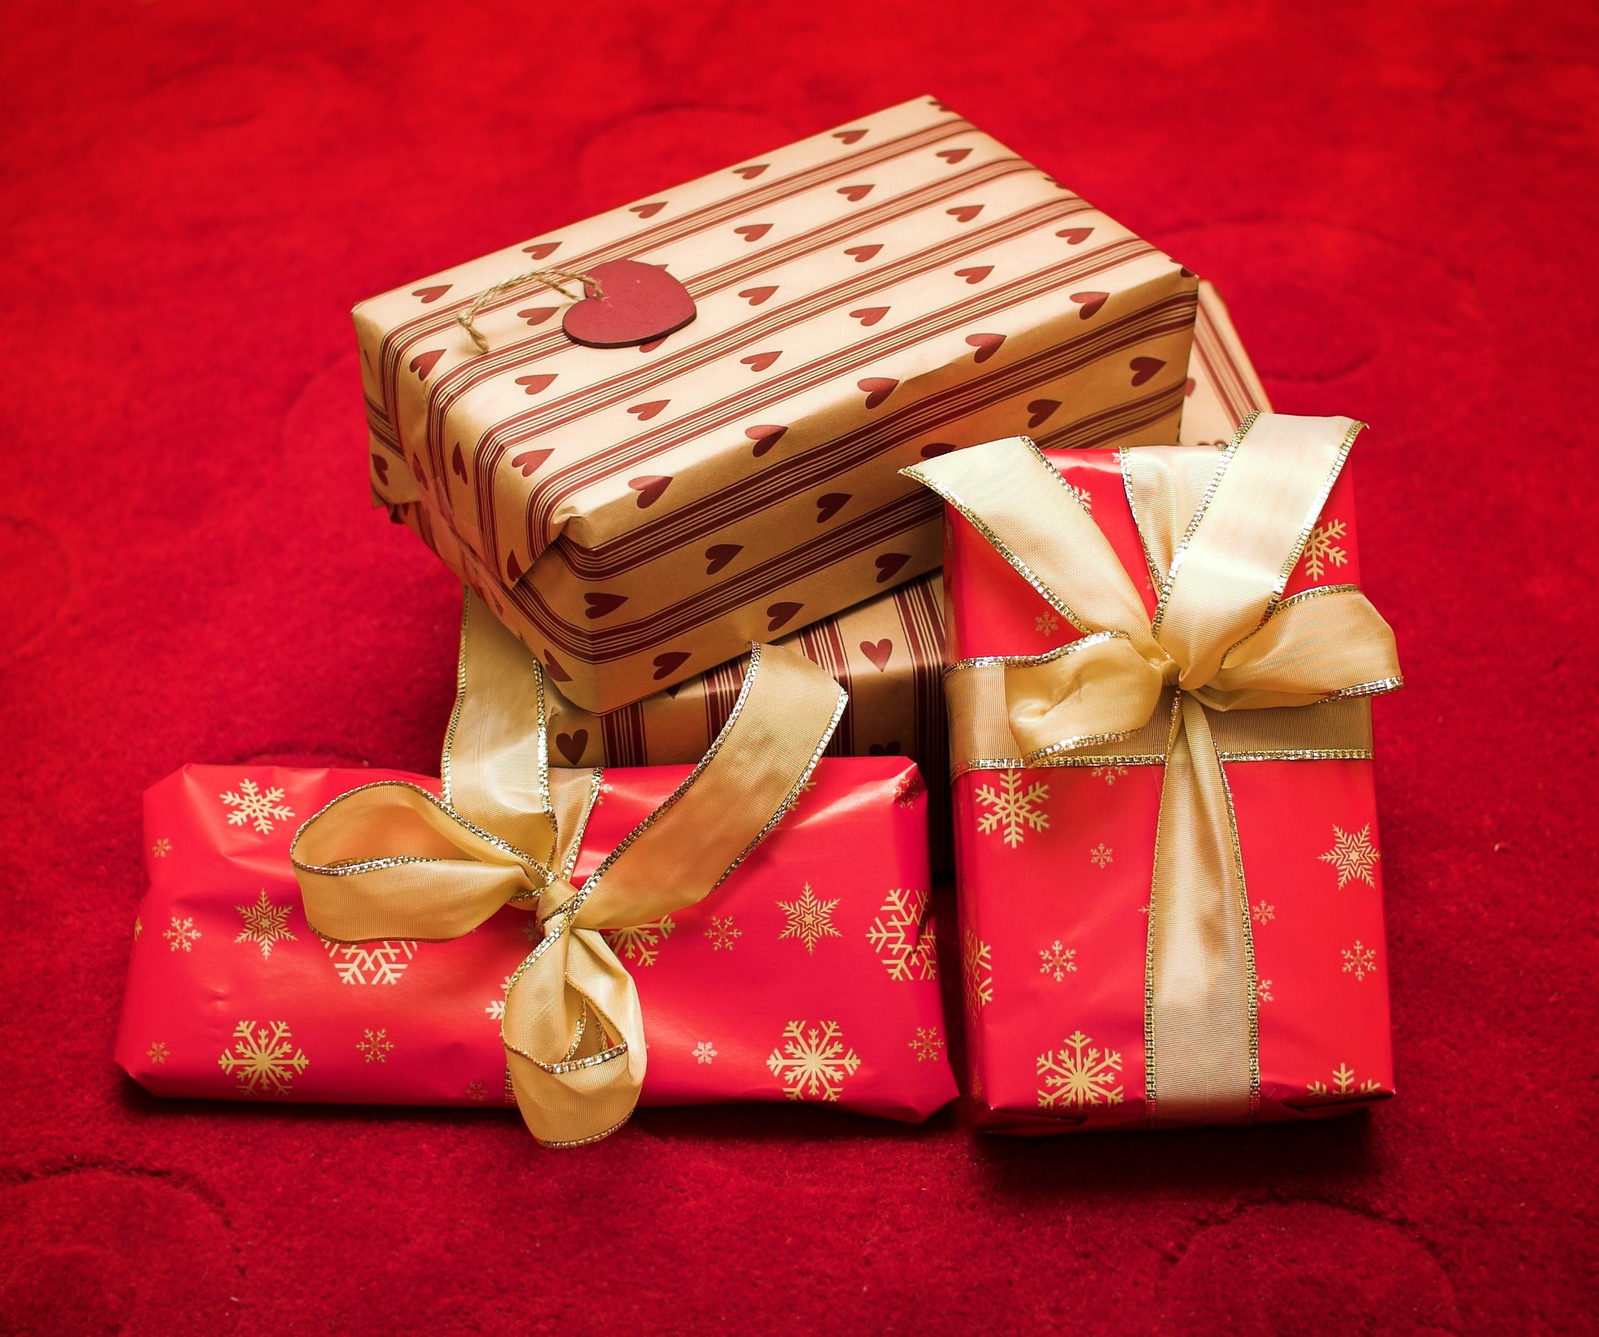 gifts-5-1316929-1599x1337